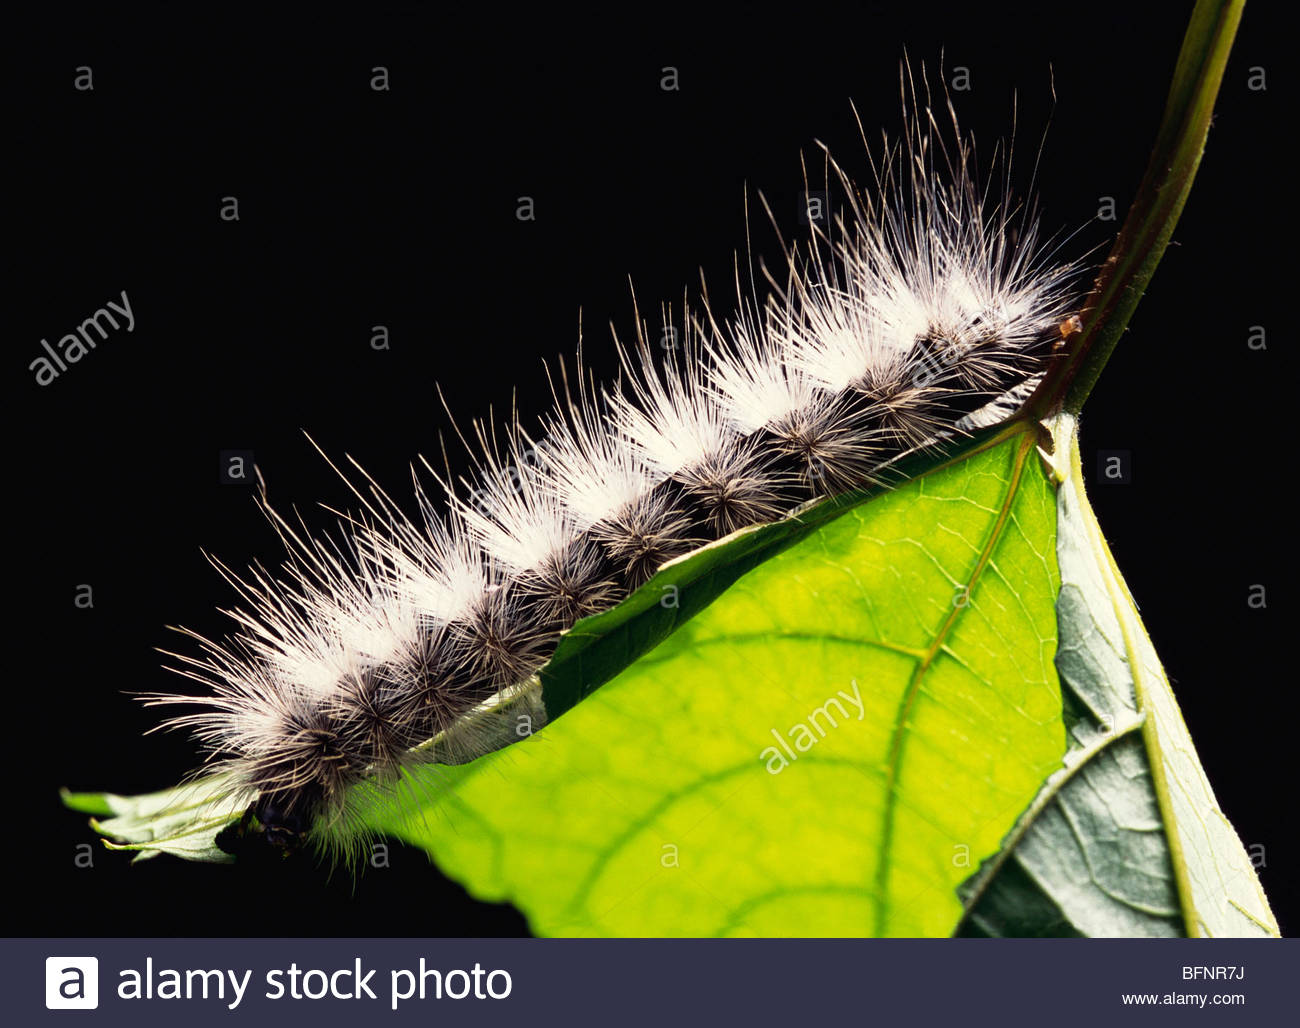 NKA 60415 : Insects ; wooly bear caterpillar on green leaf - Stock Image